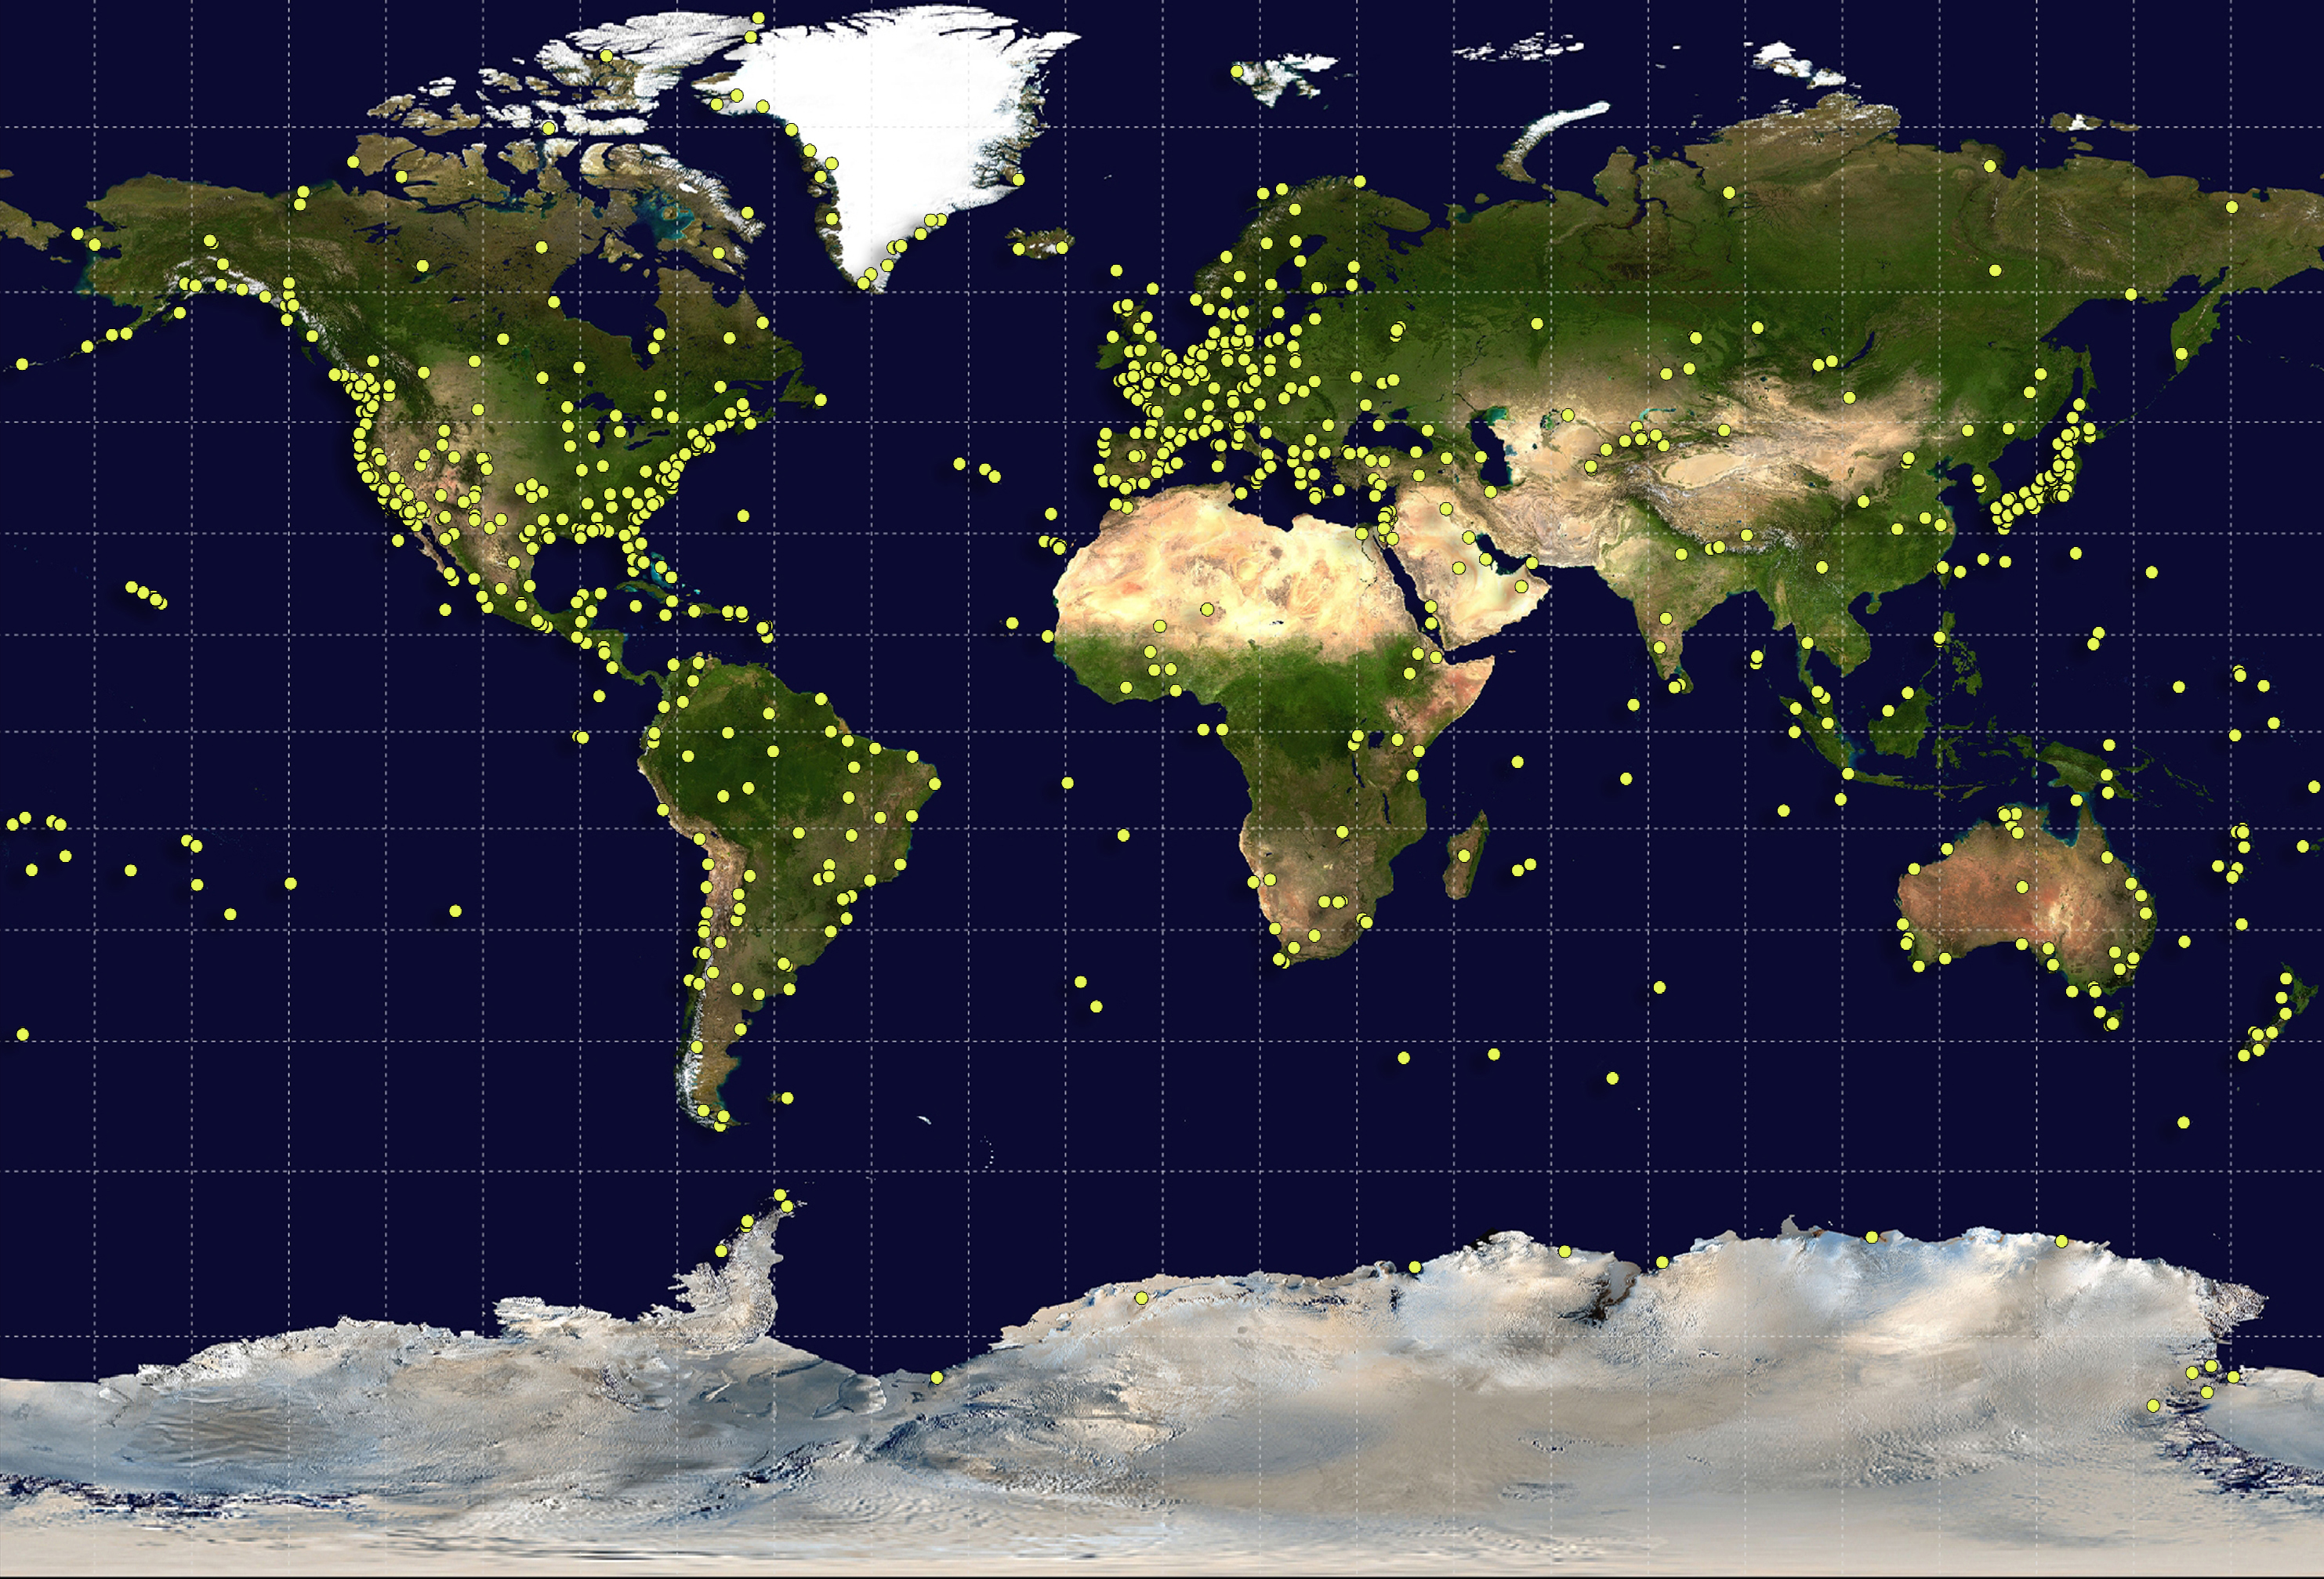 NASA Contributes To Global Standard For Navigation Studies Of - World satellite map 2014